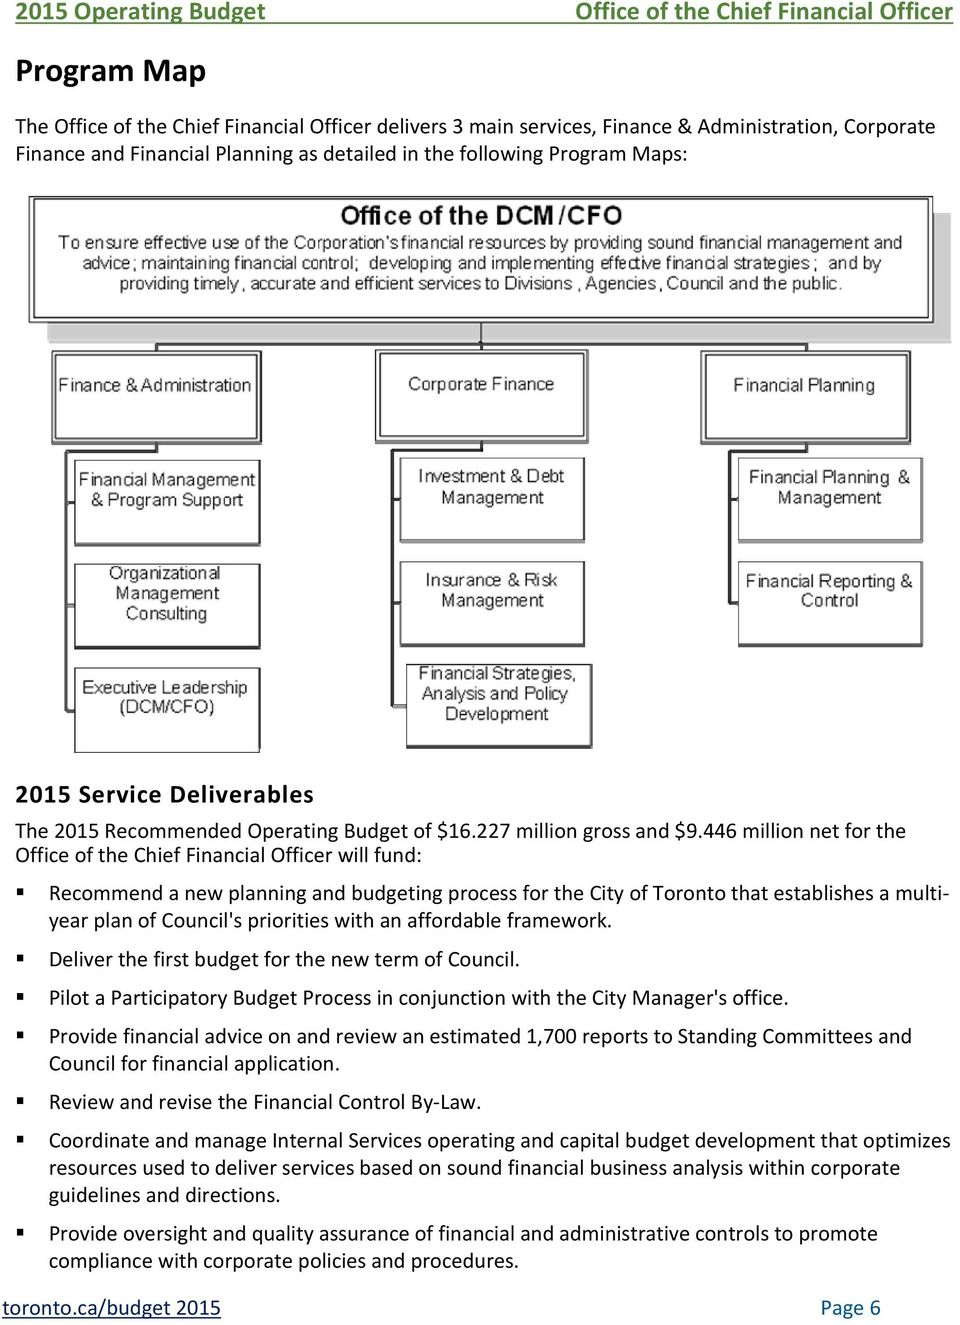 446 million net for the Office of the Chief Financial Officer will fund: Recommend a new planning and budgeting process for the City of Toronto that establishes a multiyear plan of Council's